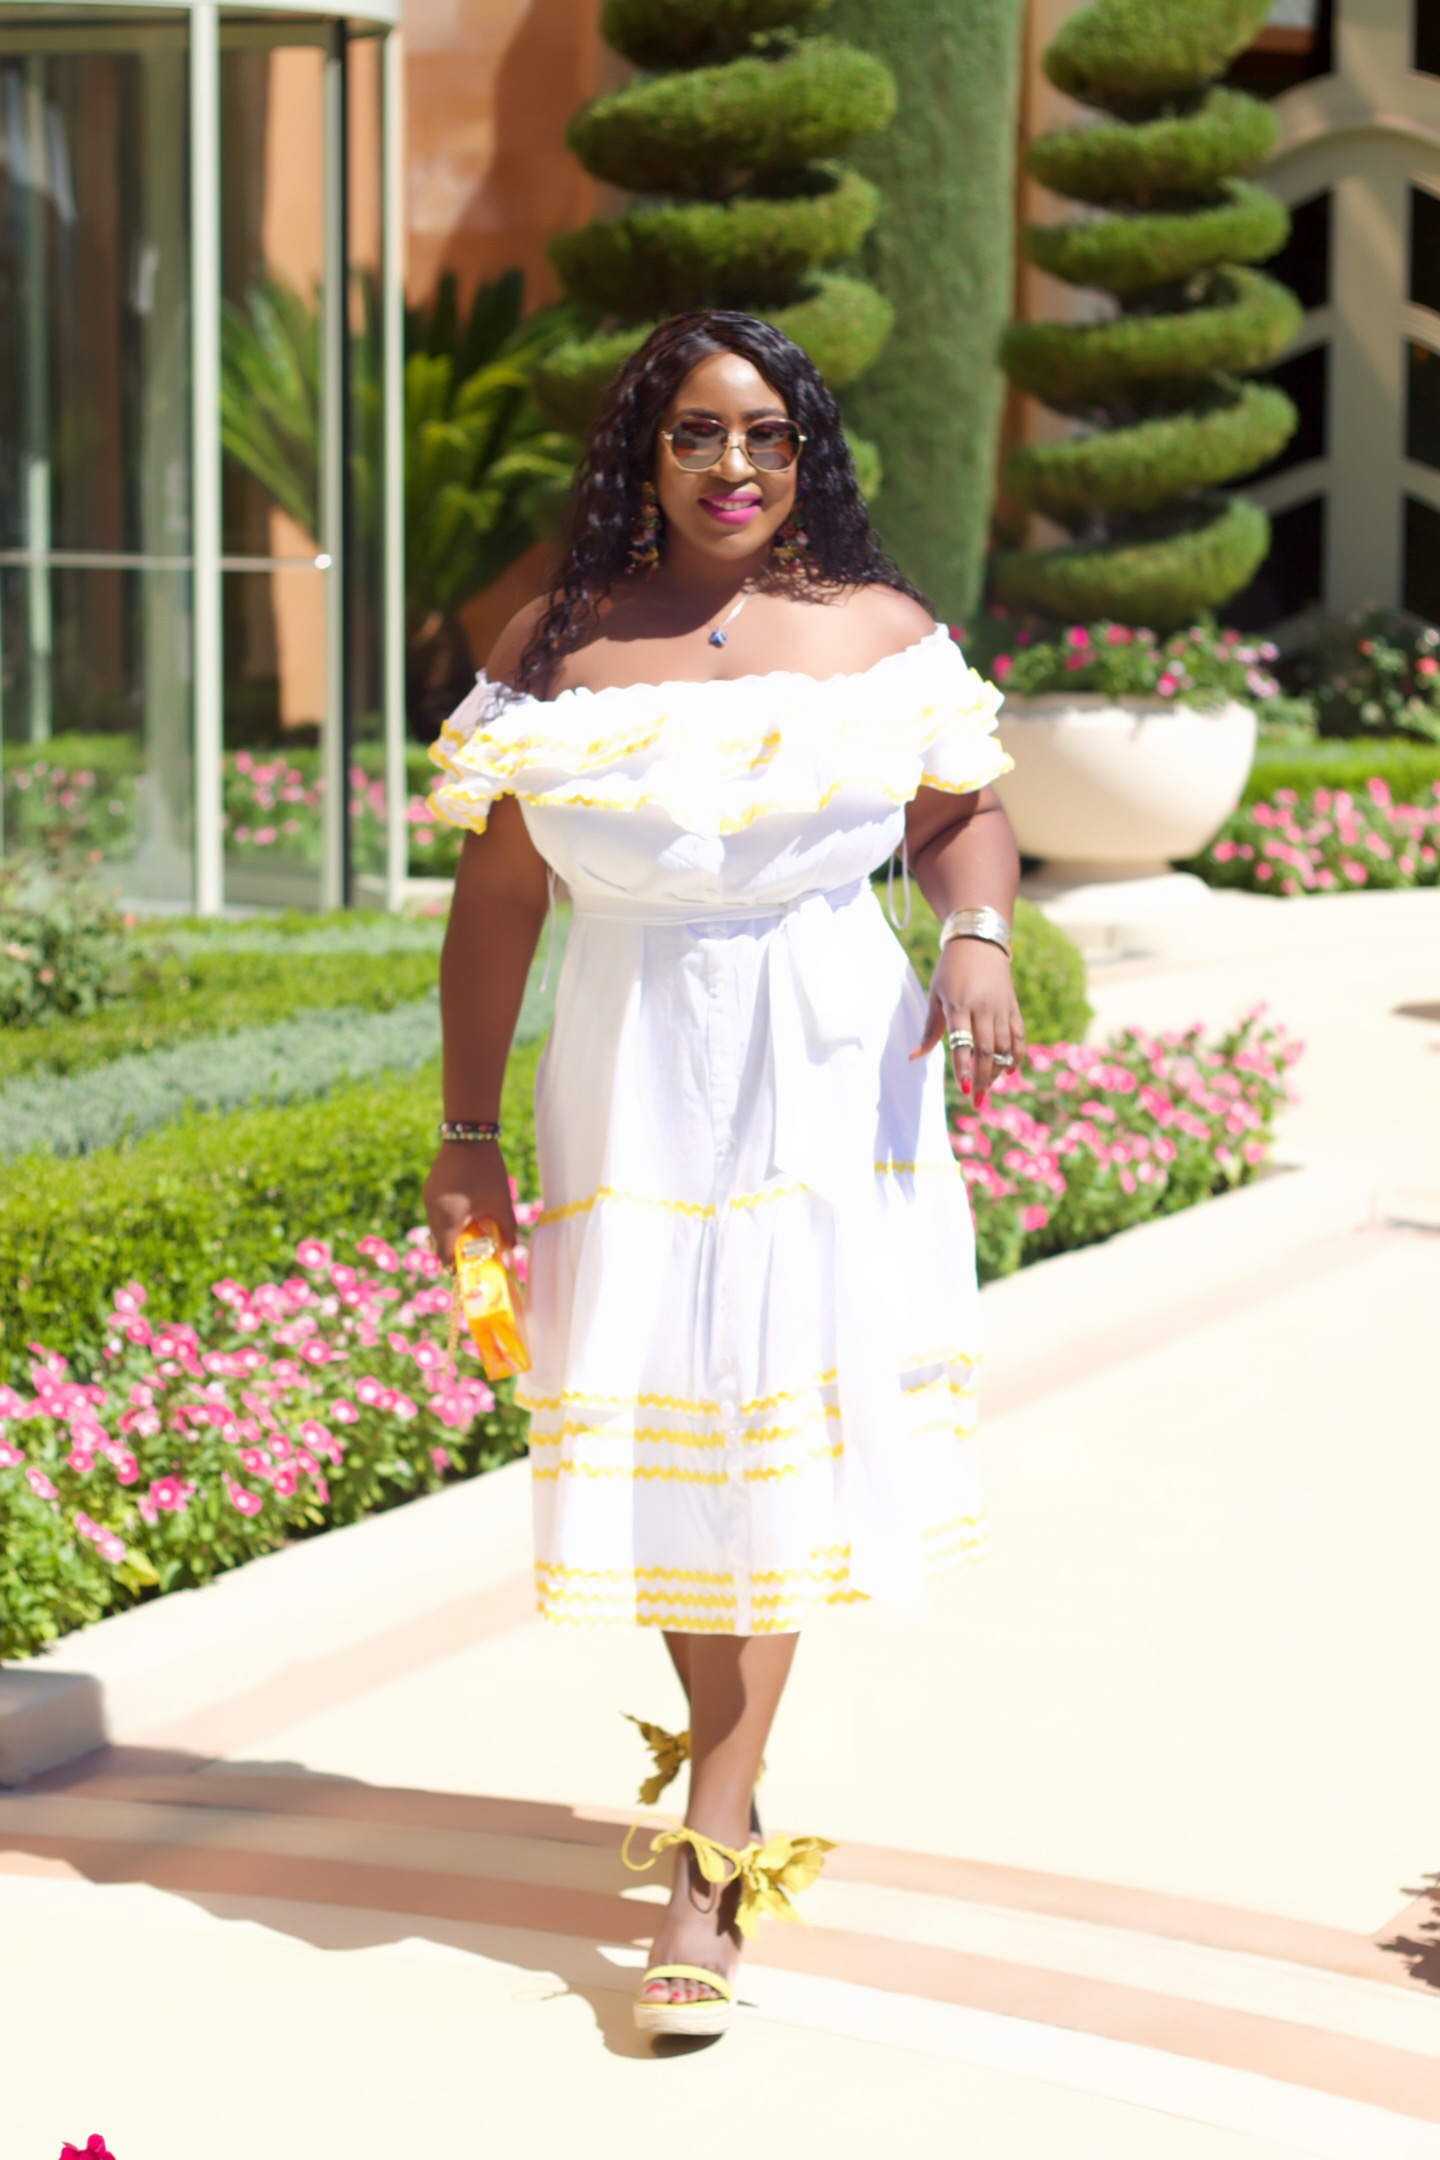 white-off-the-shoulder-dress-fashionista-lifestyle-blog